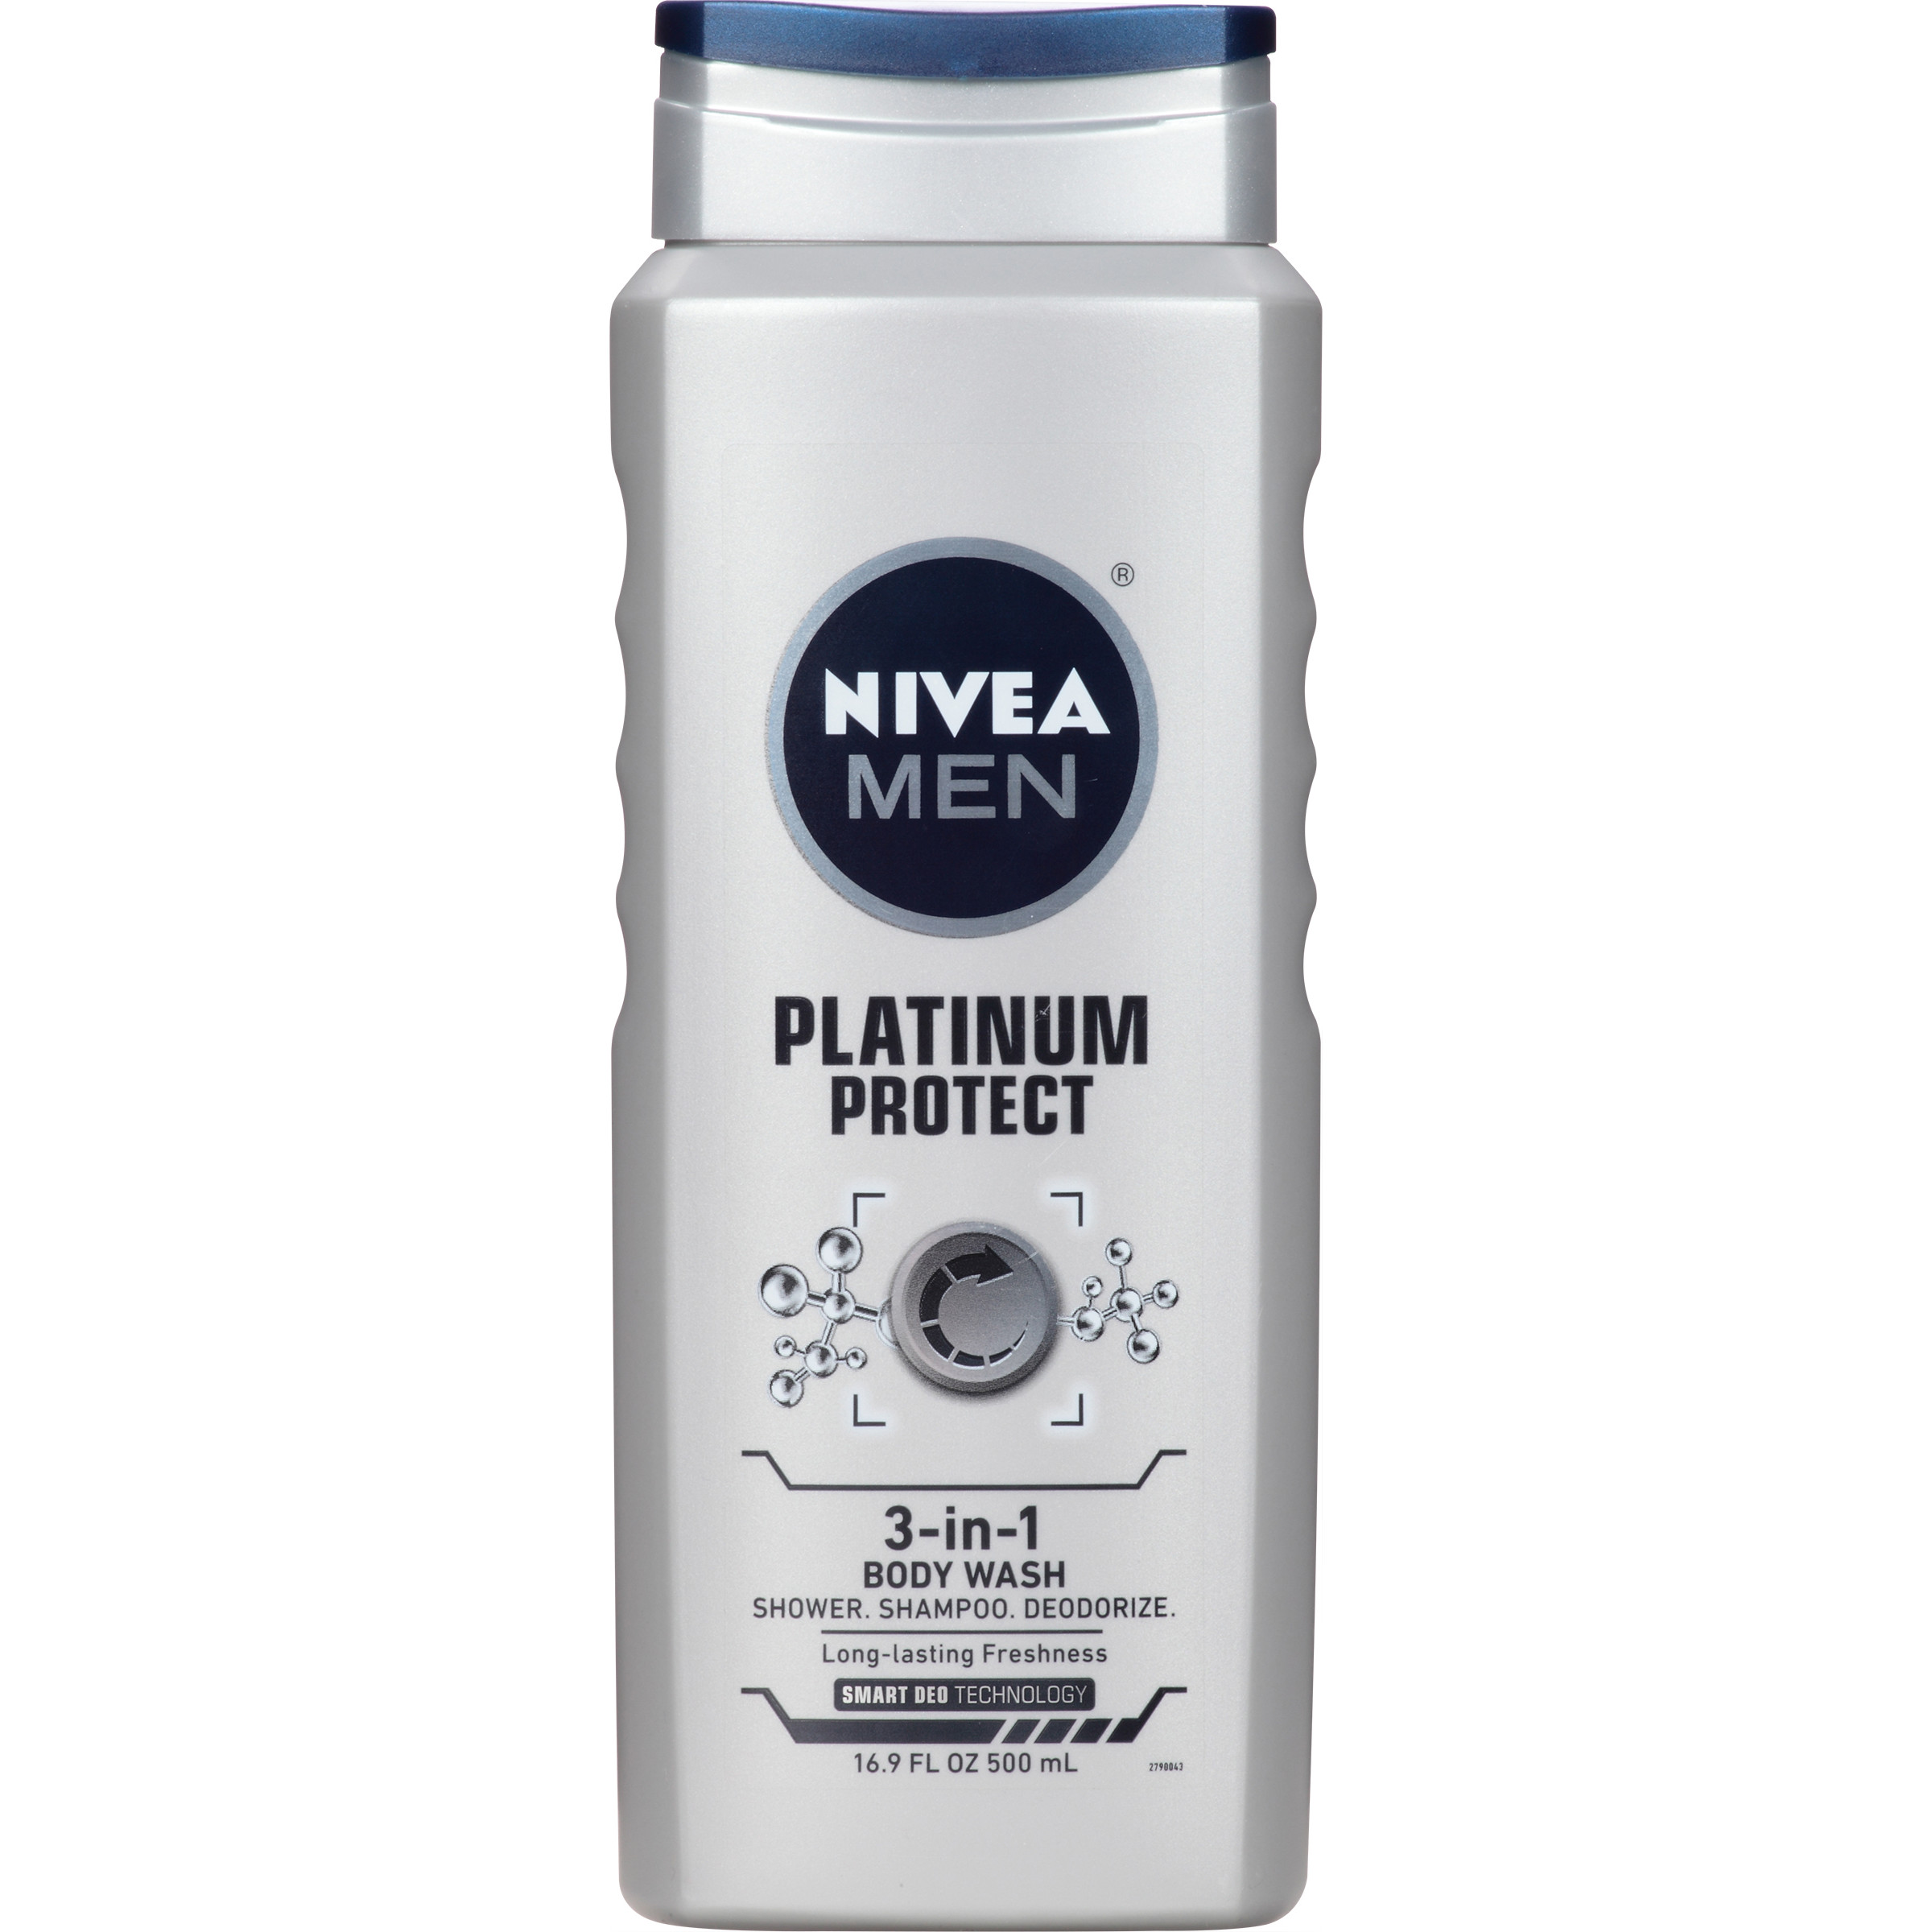 NIVEA® Men Platinum Protect 3-in-1 Body Wash 16.9 fl. oz.